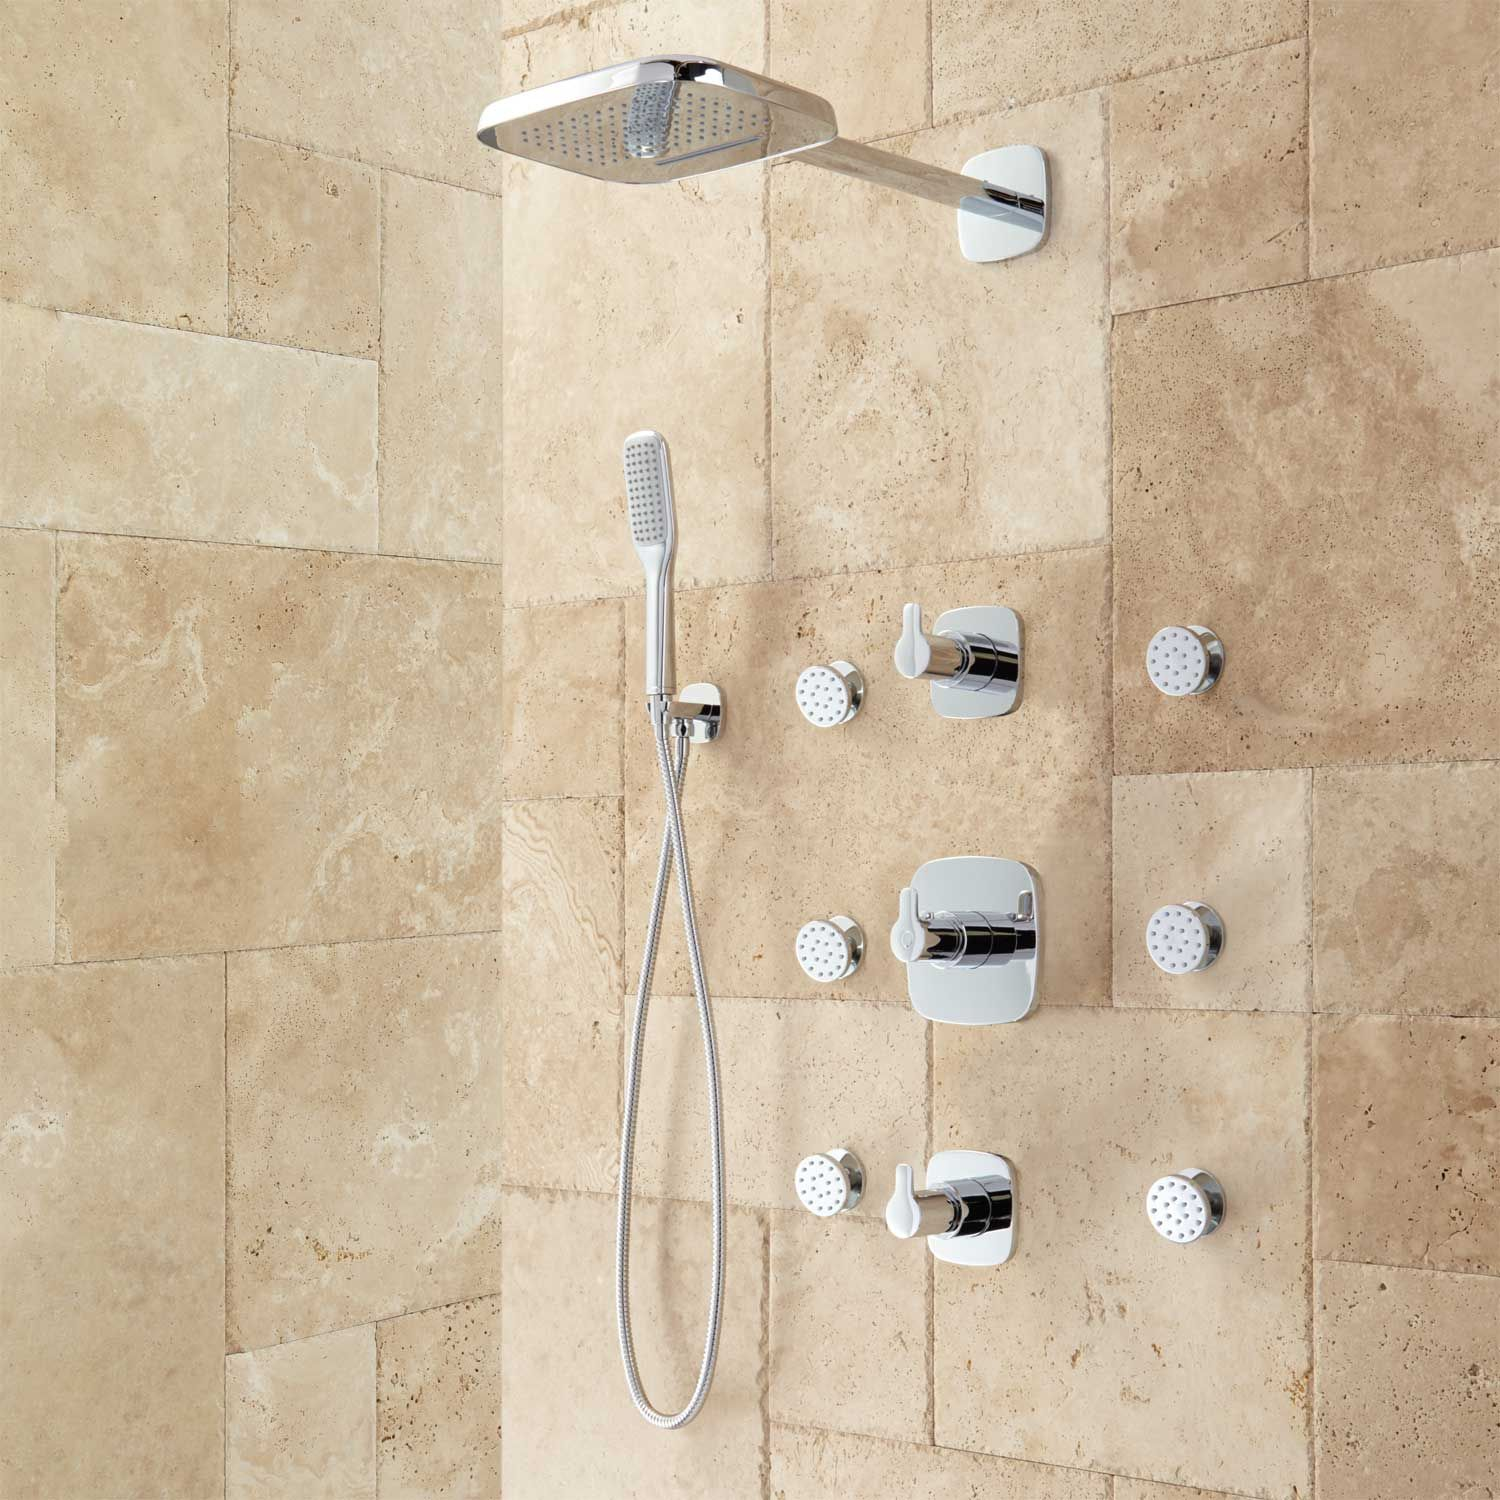 atelier bathroom system shower systems pinterest pin keuco